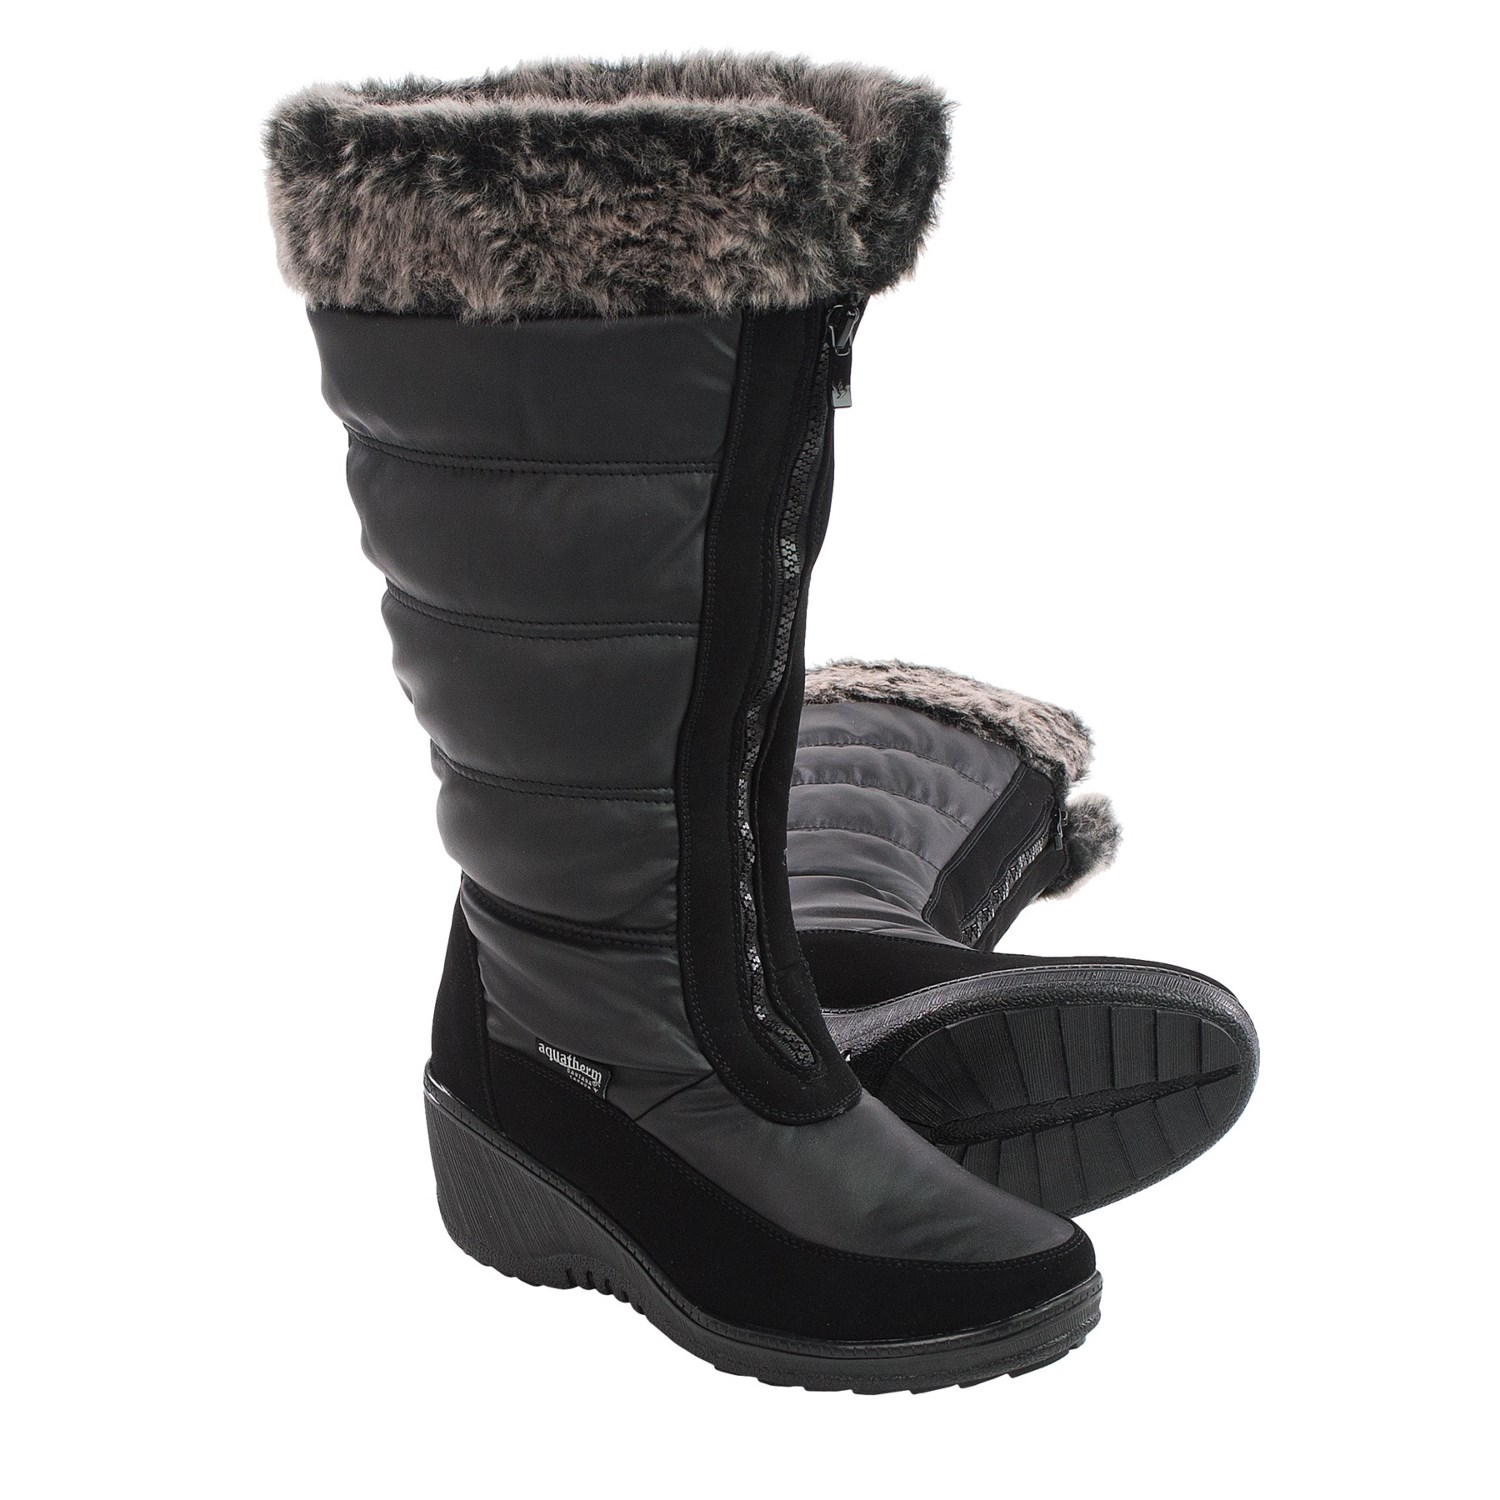 Aquatherm by Santana Canada Yule Snow Boots (For Women) 9079K ...